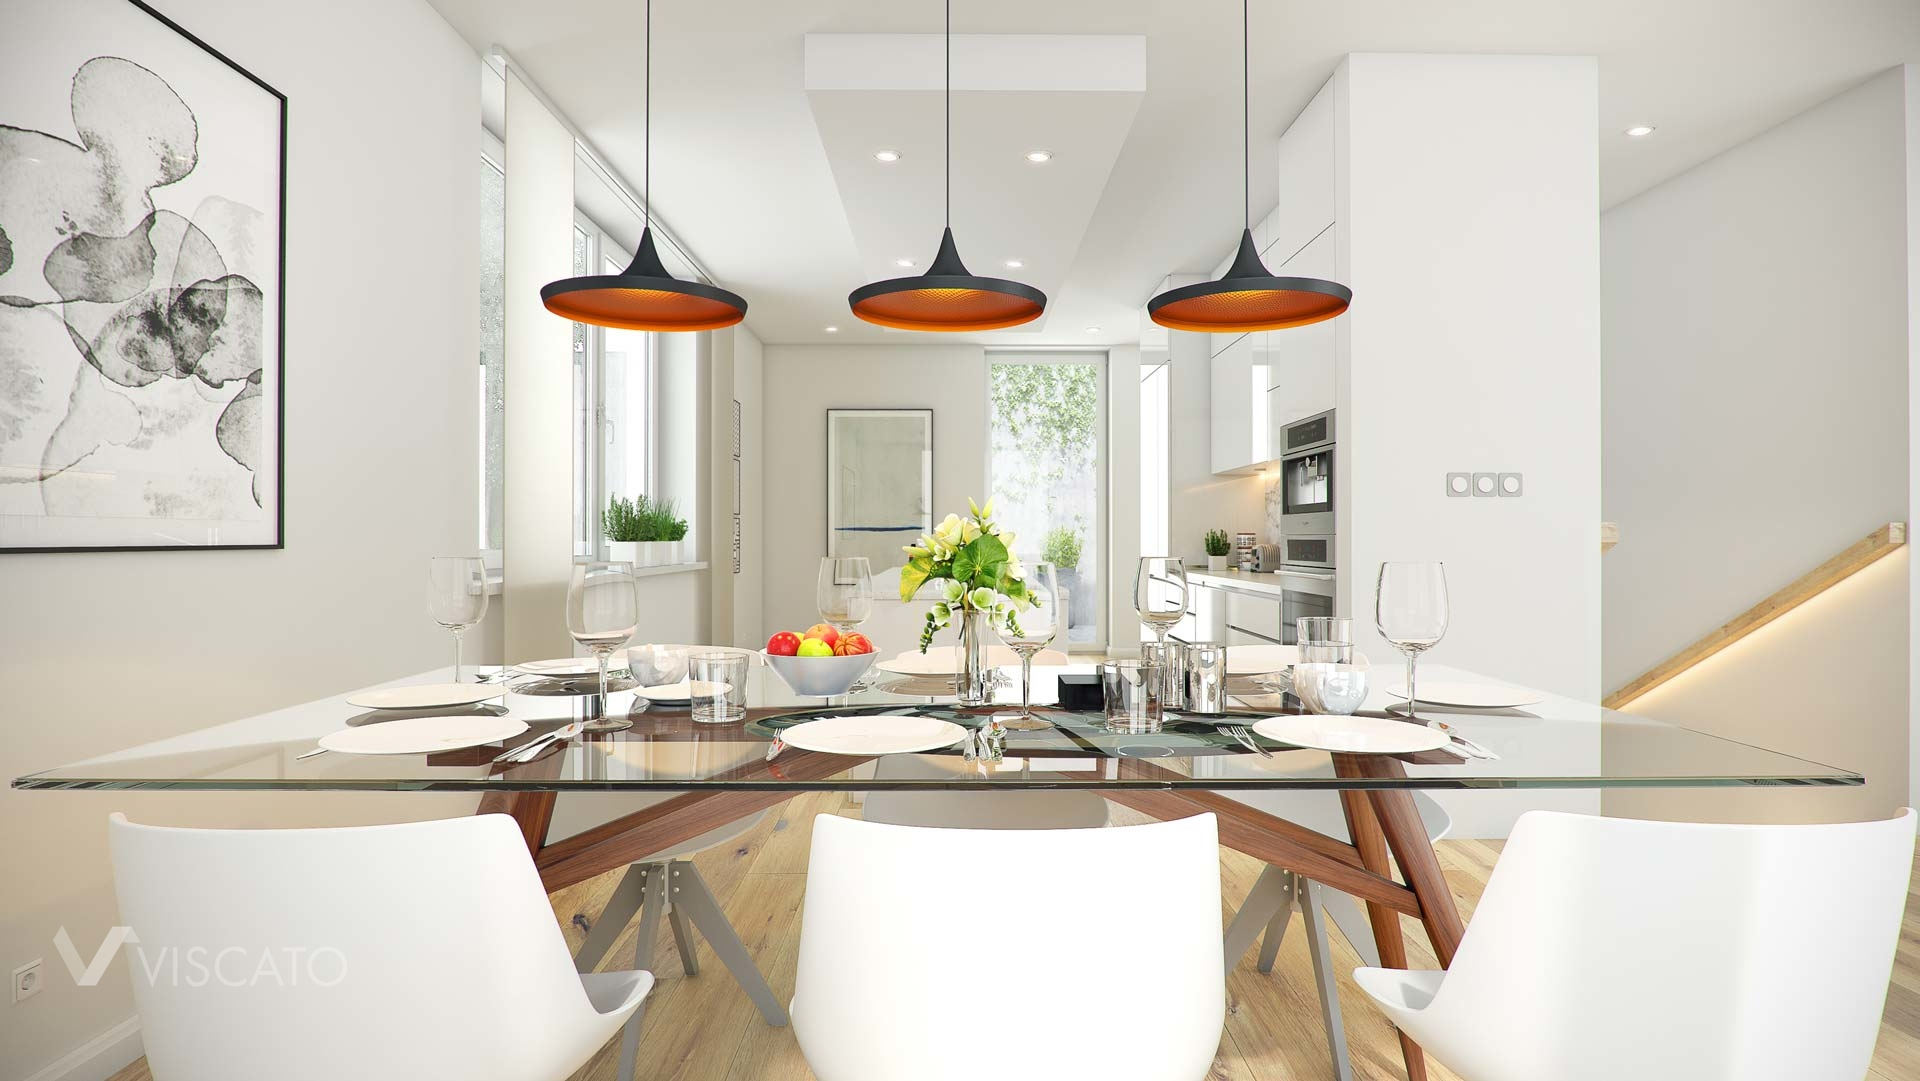 3d visualisation of a classy dining area with three lamps